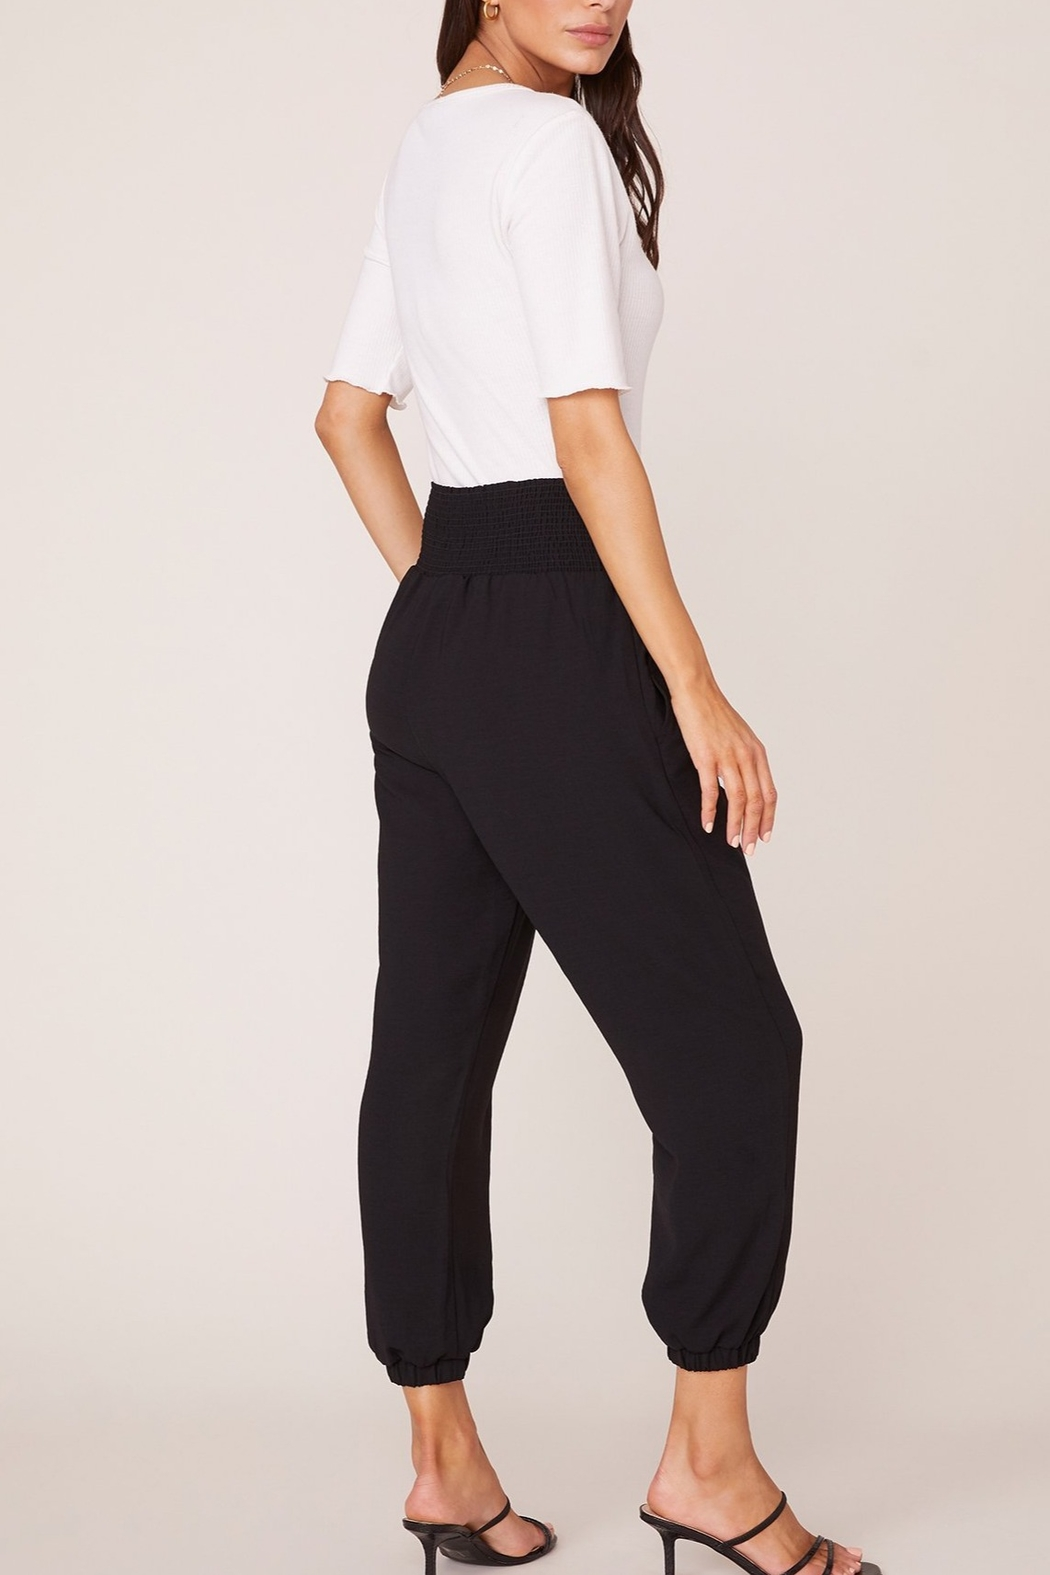 Jack by BB Dakota Black Jogger Pant - Side Cropped Image